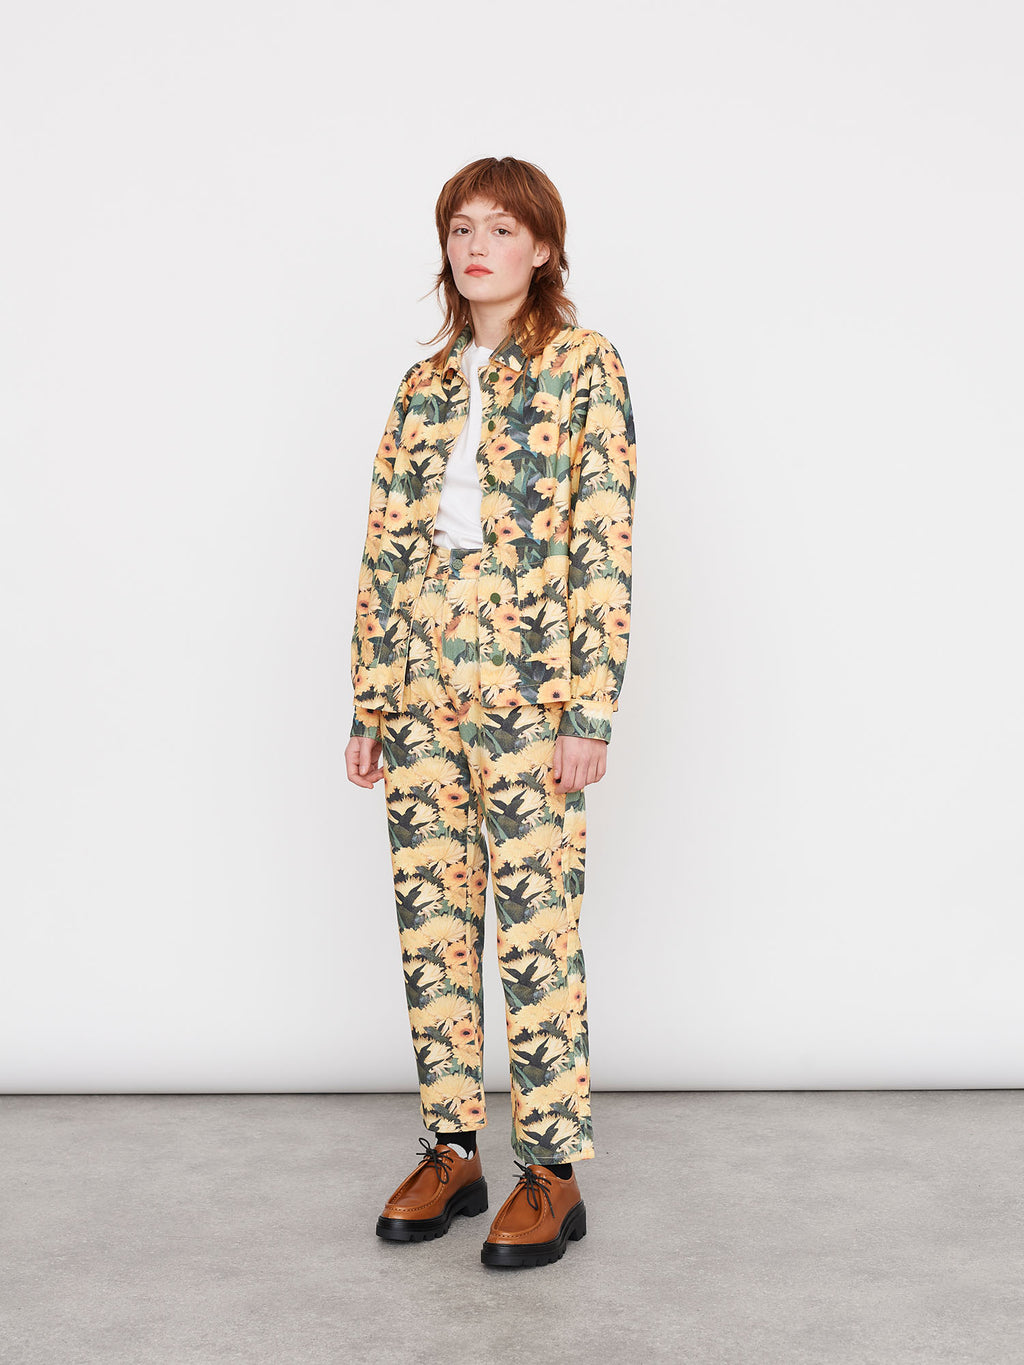 Lazy Oaf Kick It In The Bud Unisex Pants